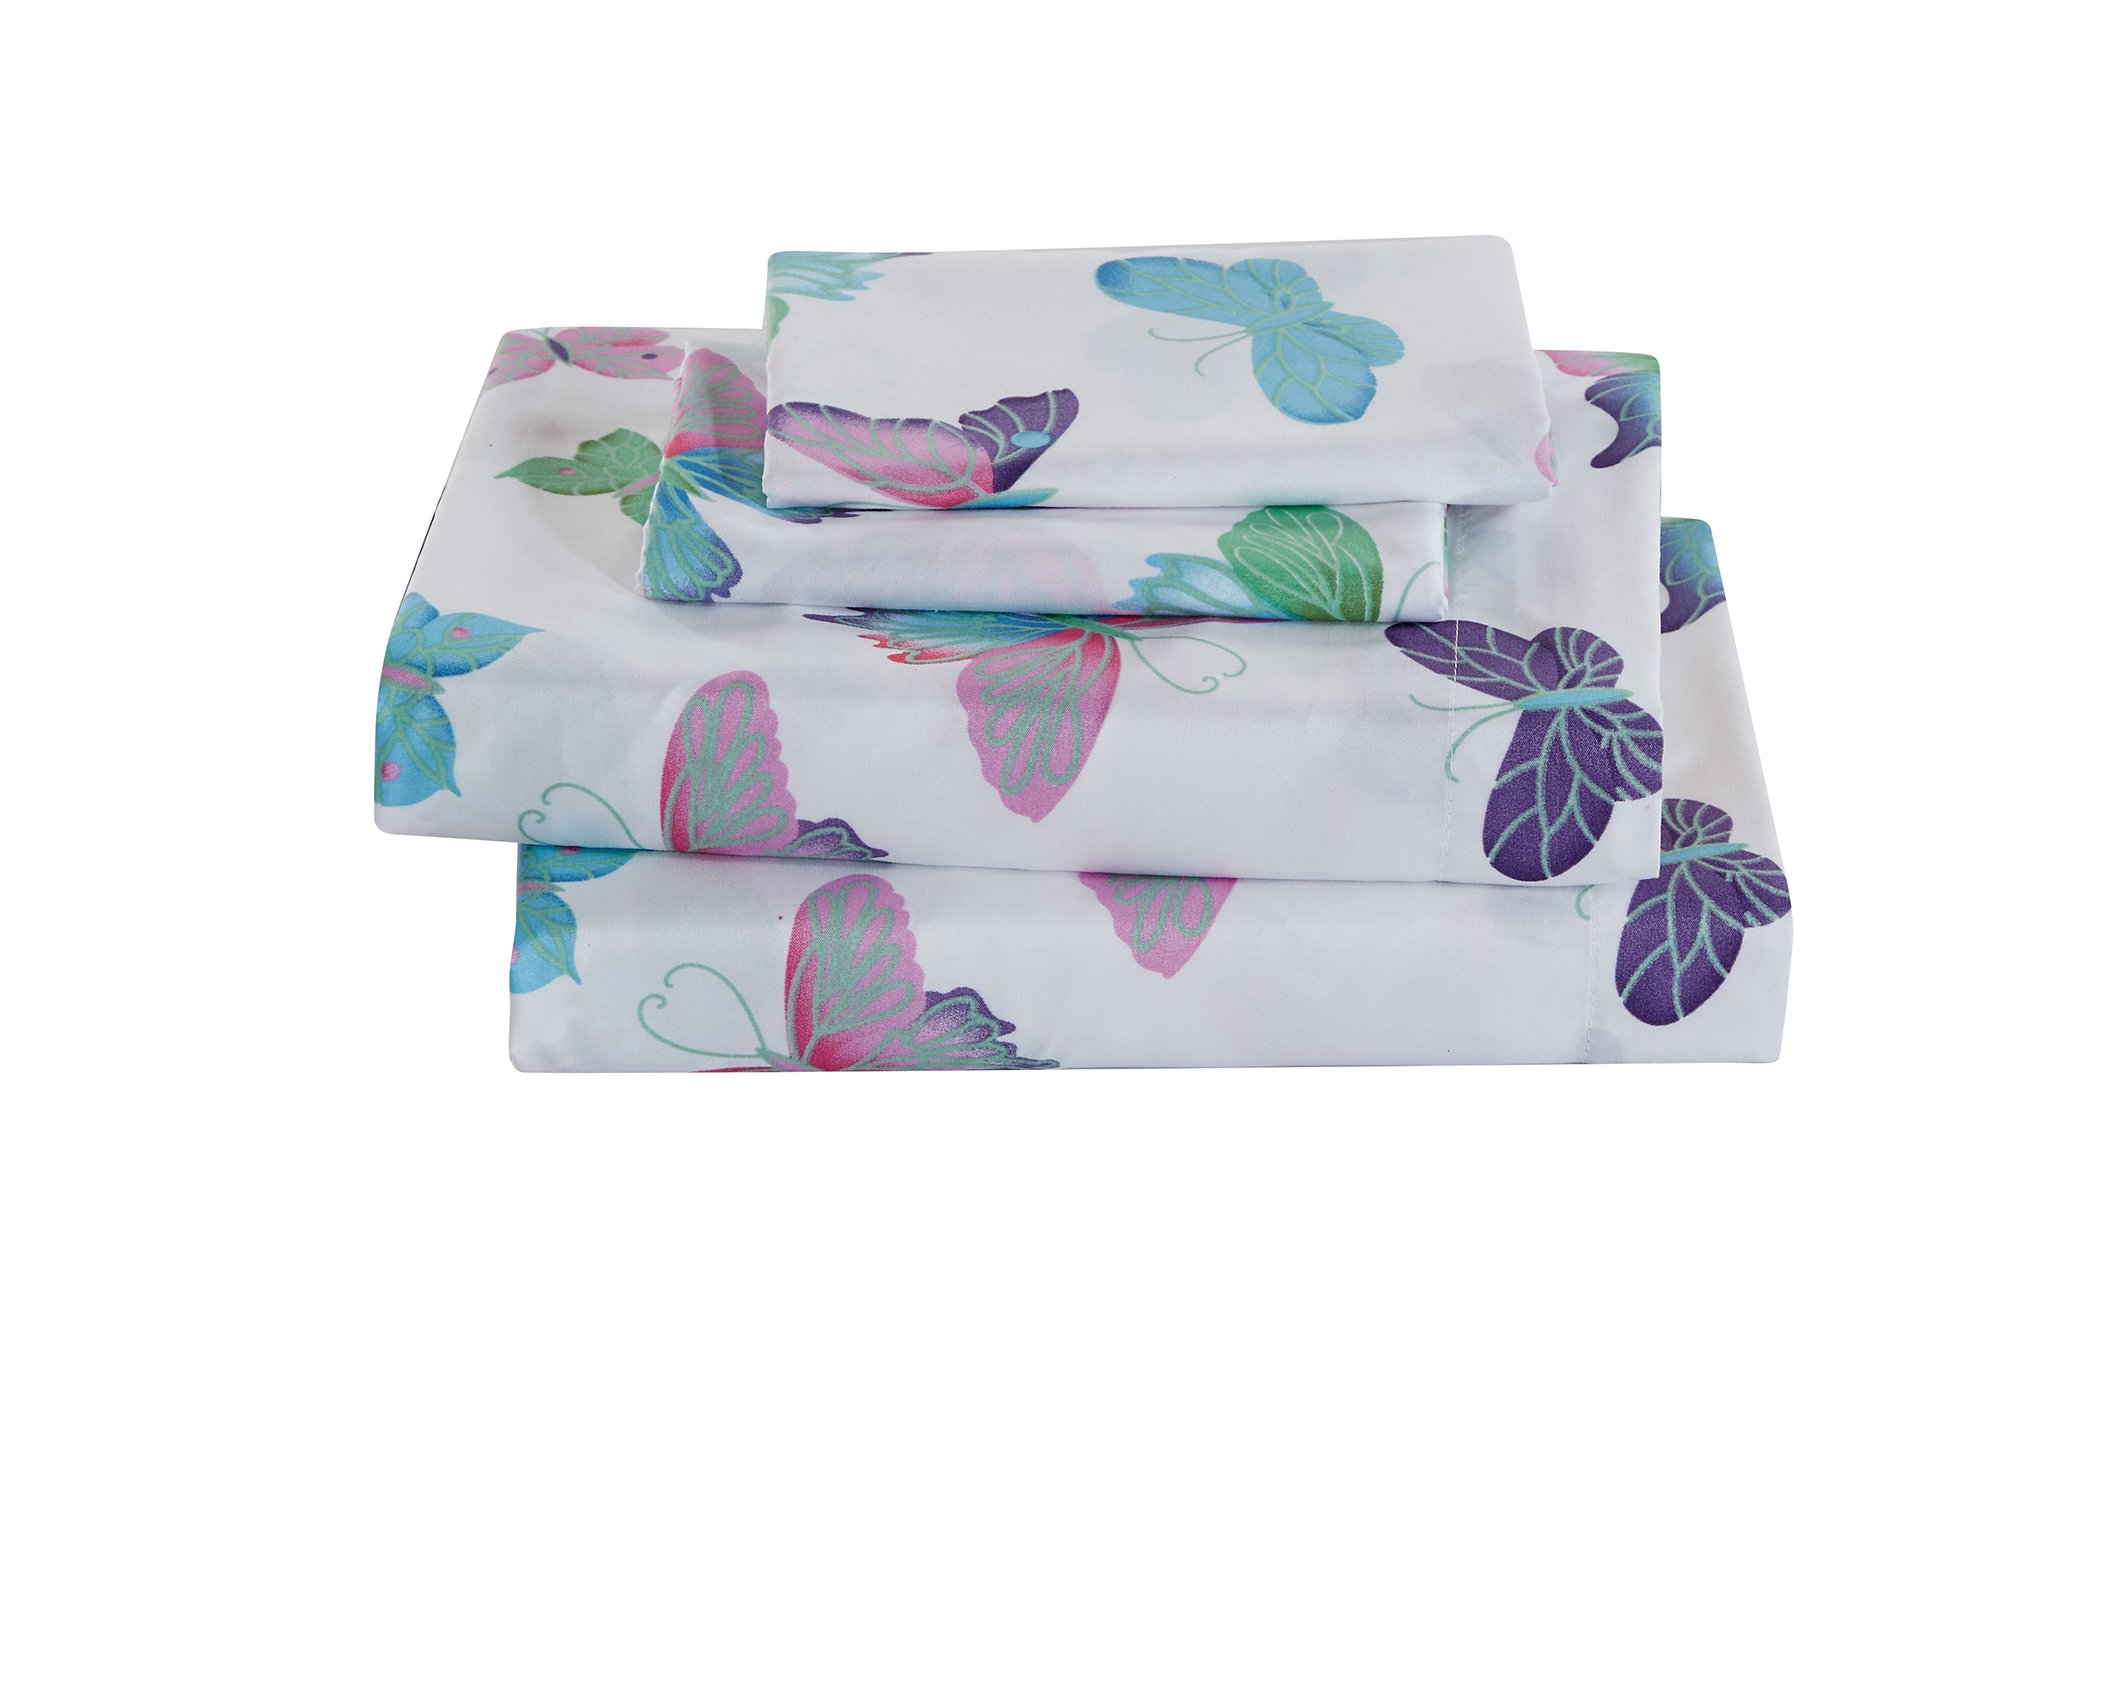 MK Home Mk Collection 4pc Full Sheet Set Butterfly Purple Pink Turquoise Green Girls/Teens New # Butterfly Sheet B